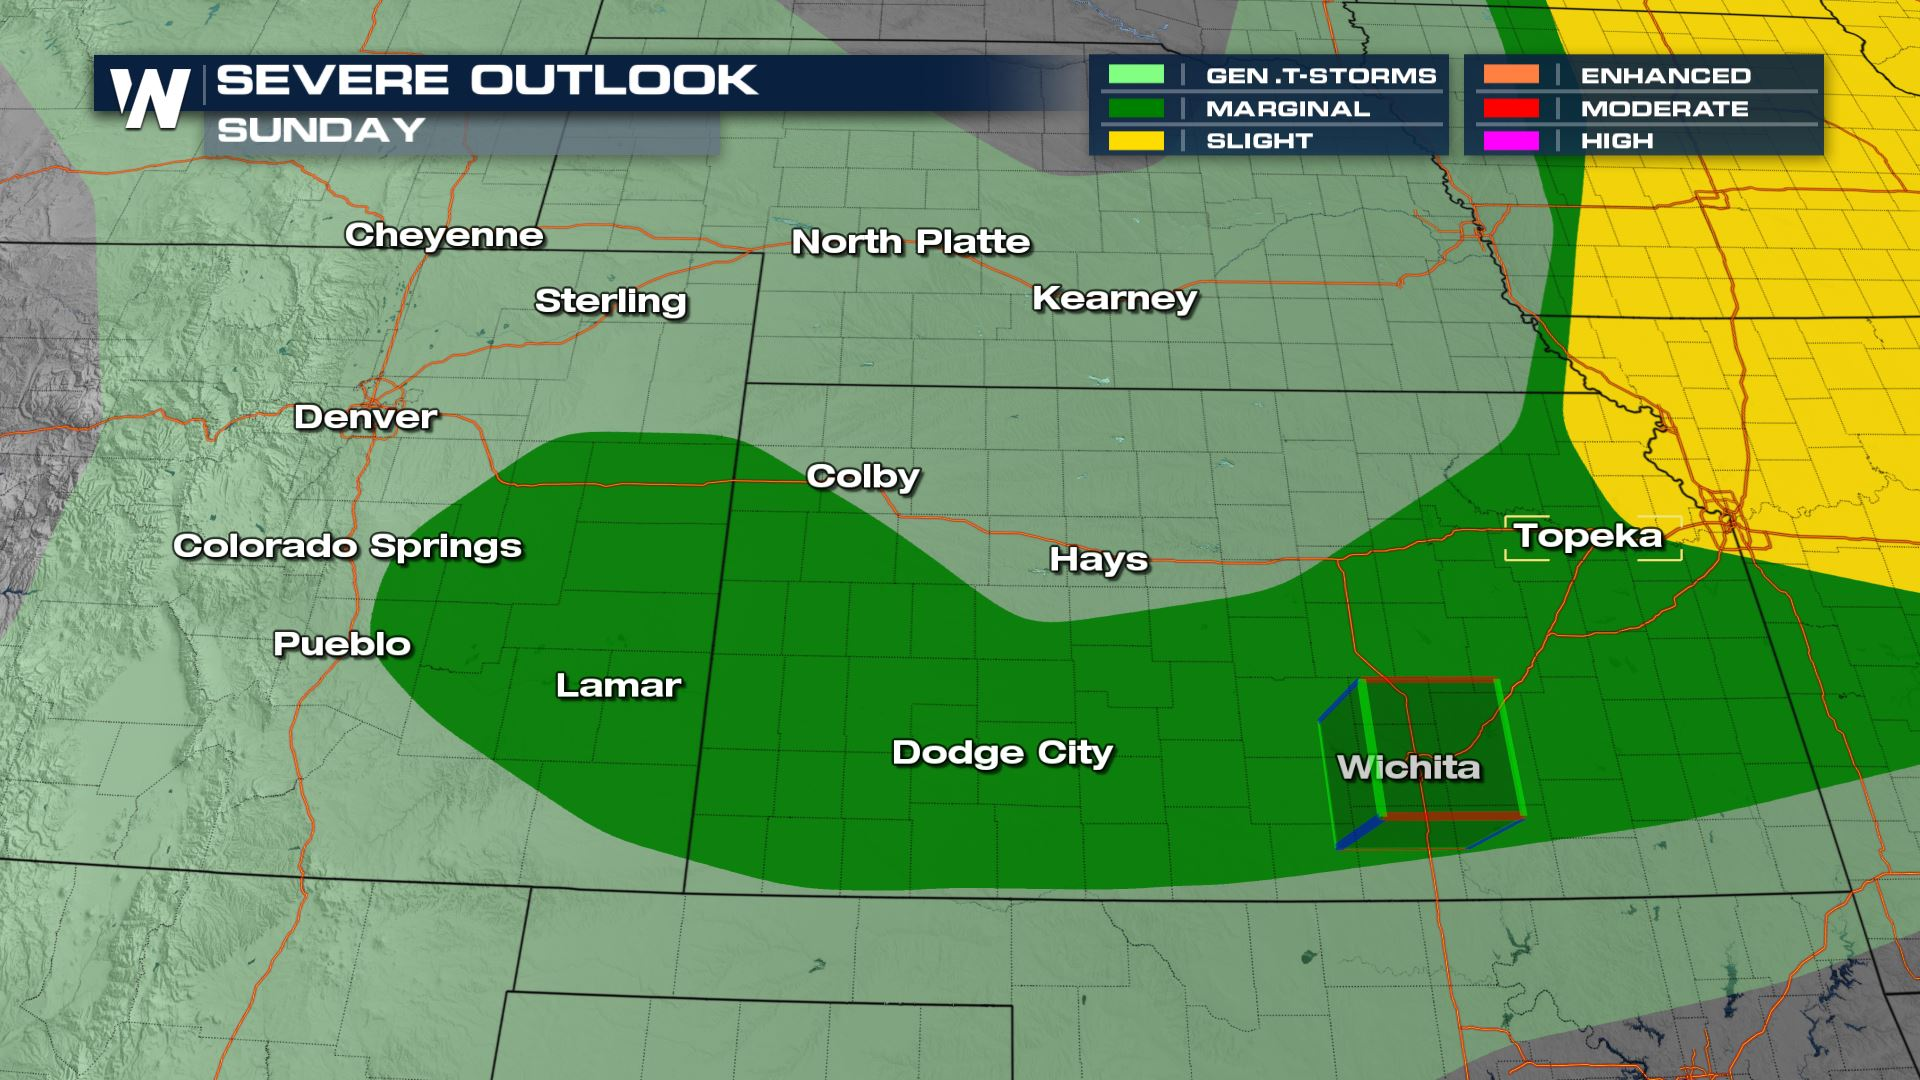 Severe Storms for the Rockies Front Range, Sunday